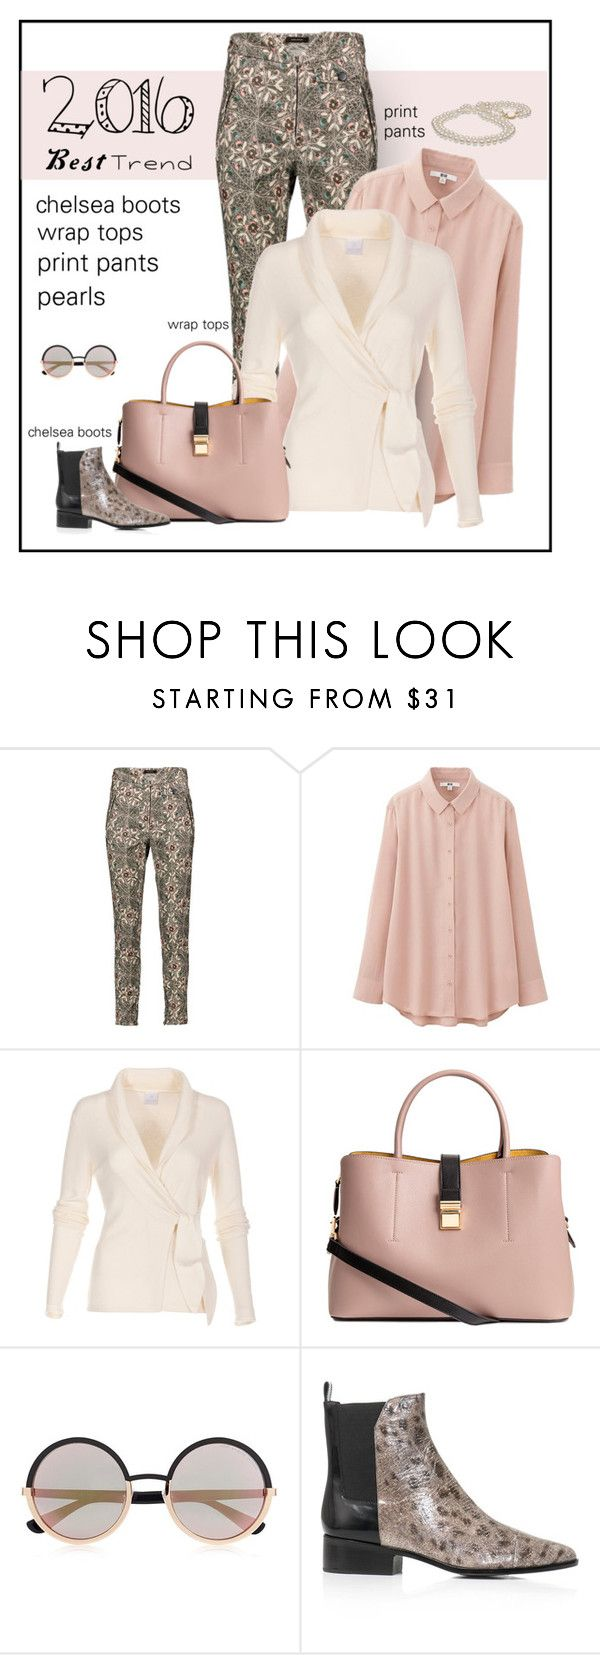 """""""Best Fashion Trends"""" by patricia-dimmick ❤ liked on Polyvore featuring Isabel Marant, Uniqlo, Marc by Marc Jacobs, 3.1 Phillip Lim, fashiontrends, 2016 and besttrend2016"""